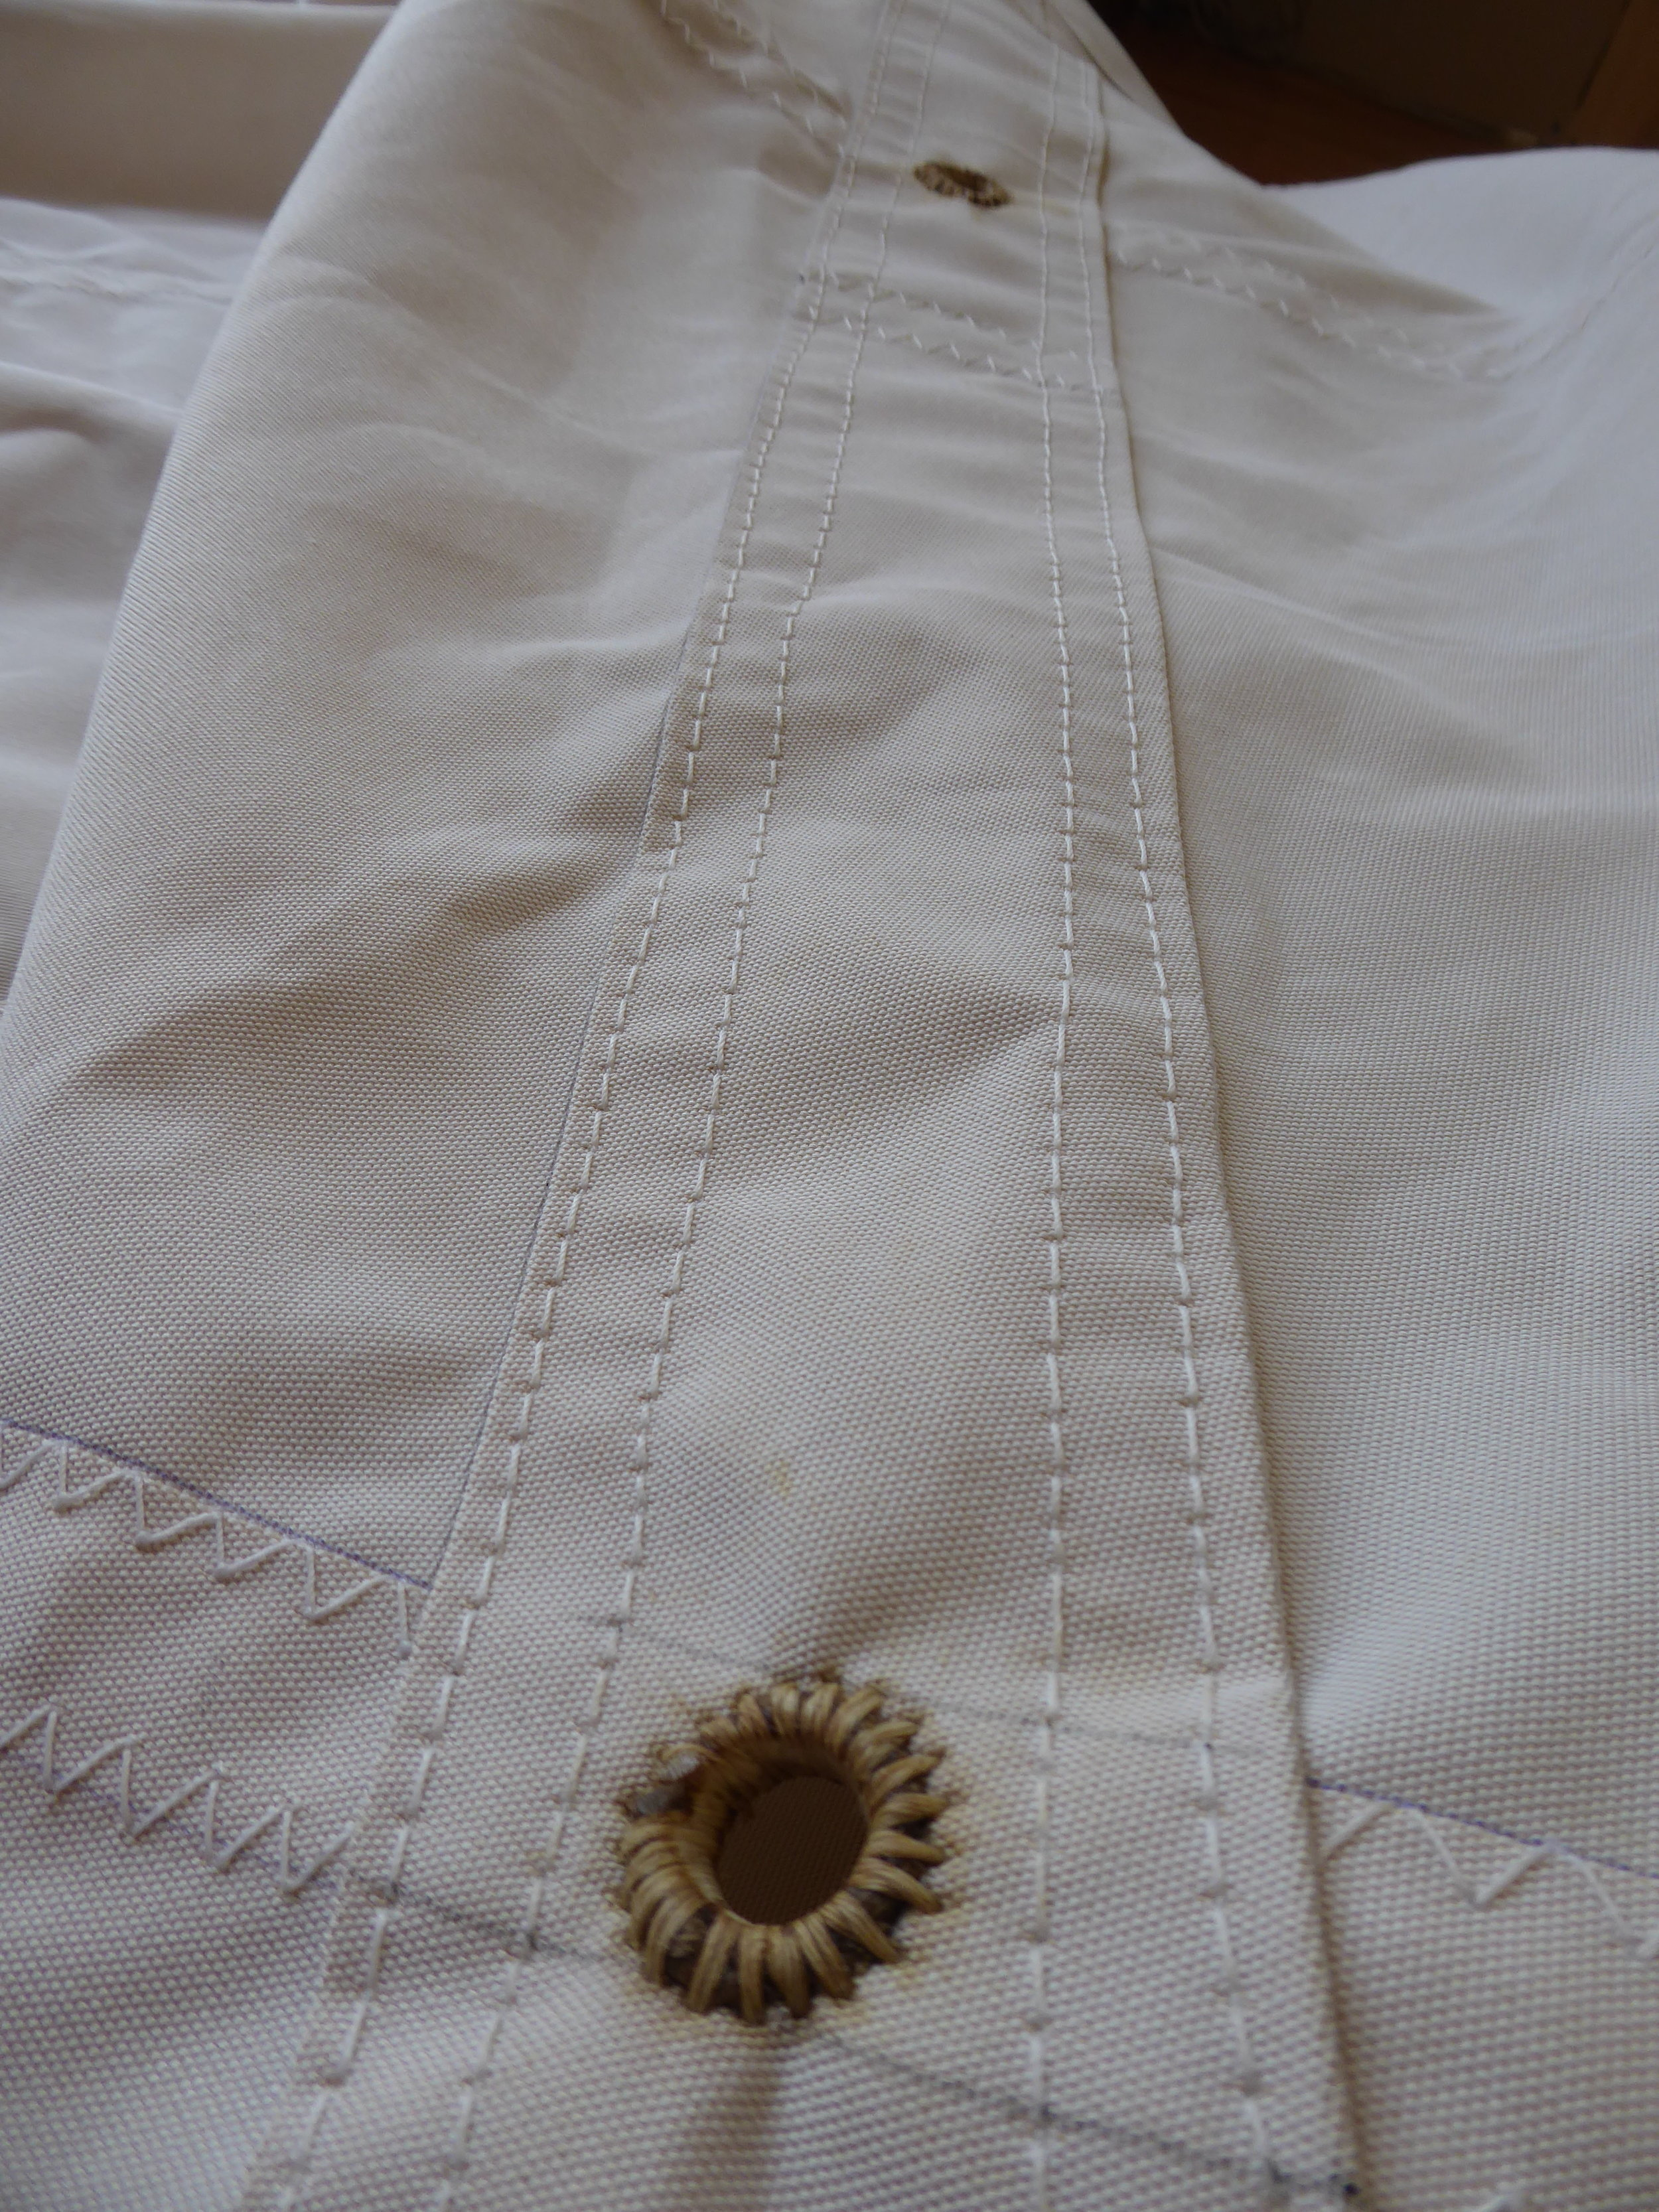 Close-ups of hand sewn reef grommets by Traditional Rigging Co., the maker of Edna Lockwood's new sails.